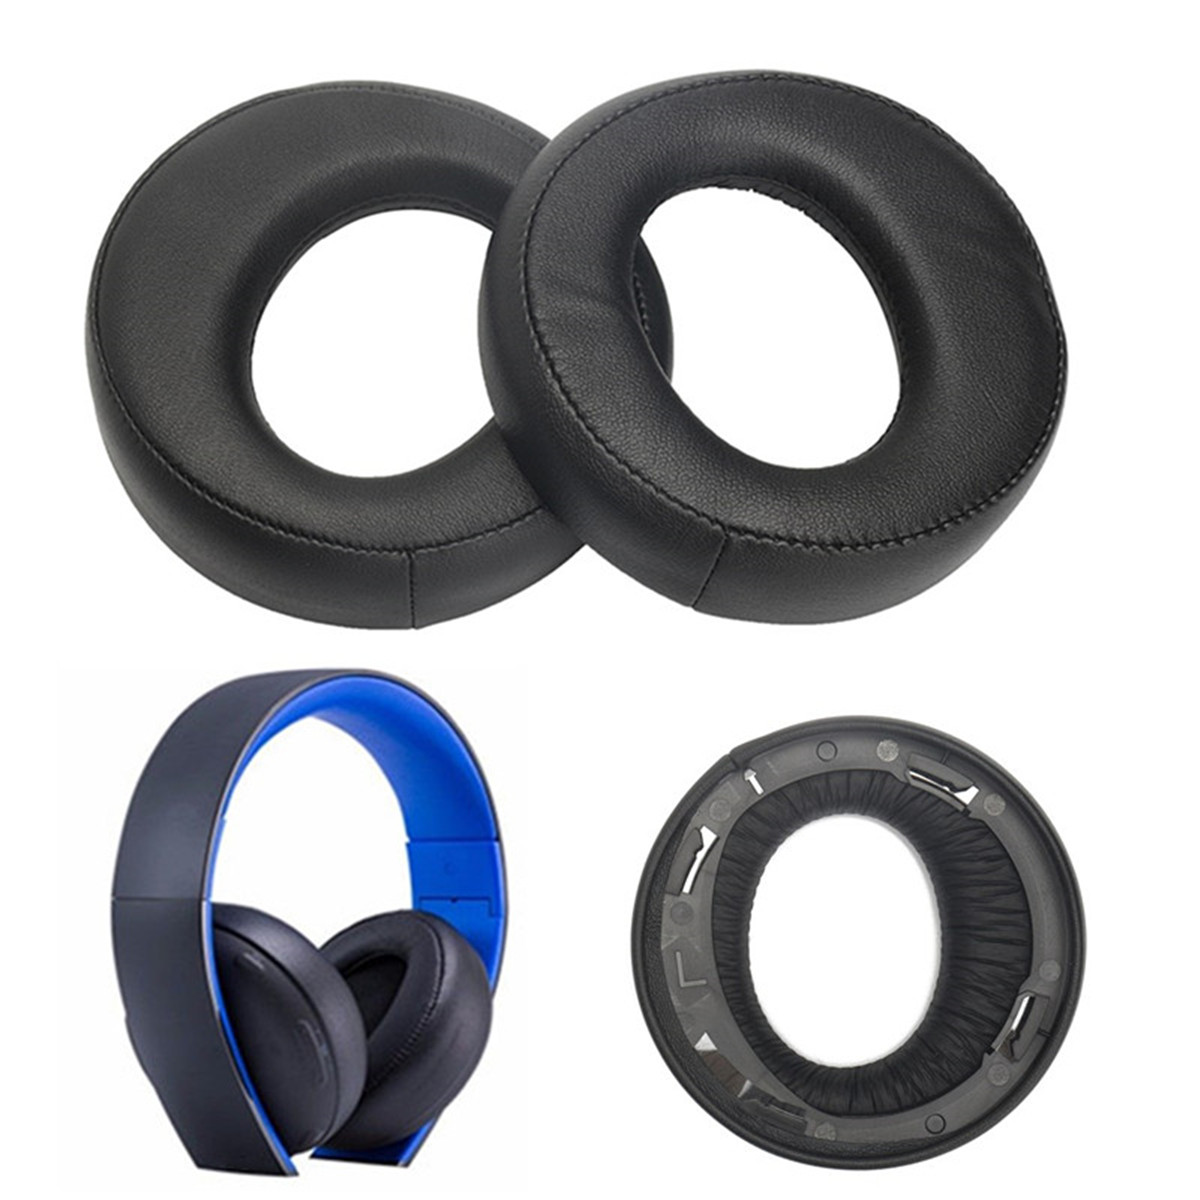 Earpad Cushion For Sony Blue for SONY Gold Wireless Stereo Headphone Headset PS3 PS4 7.1 L R